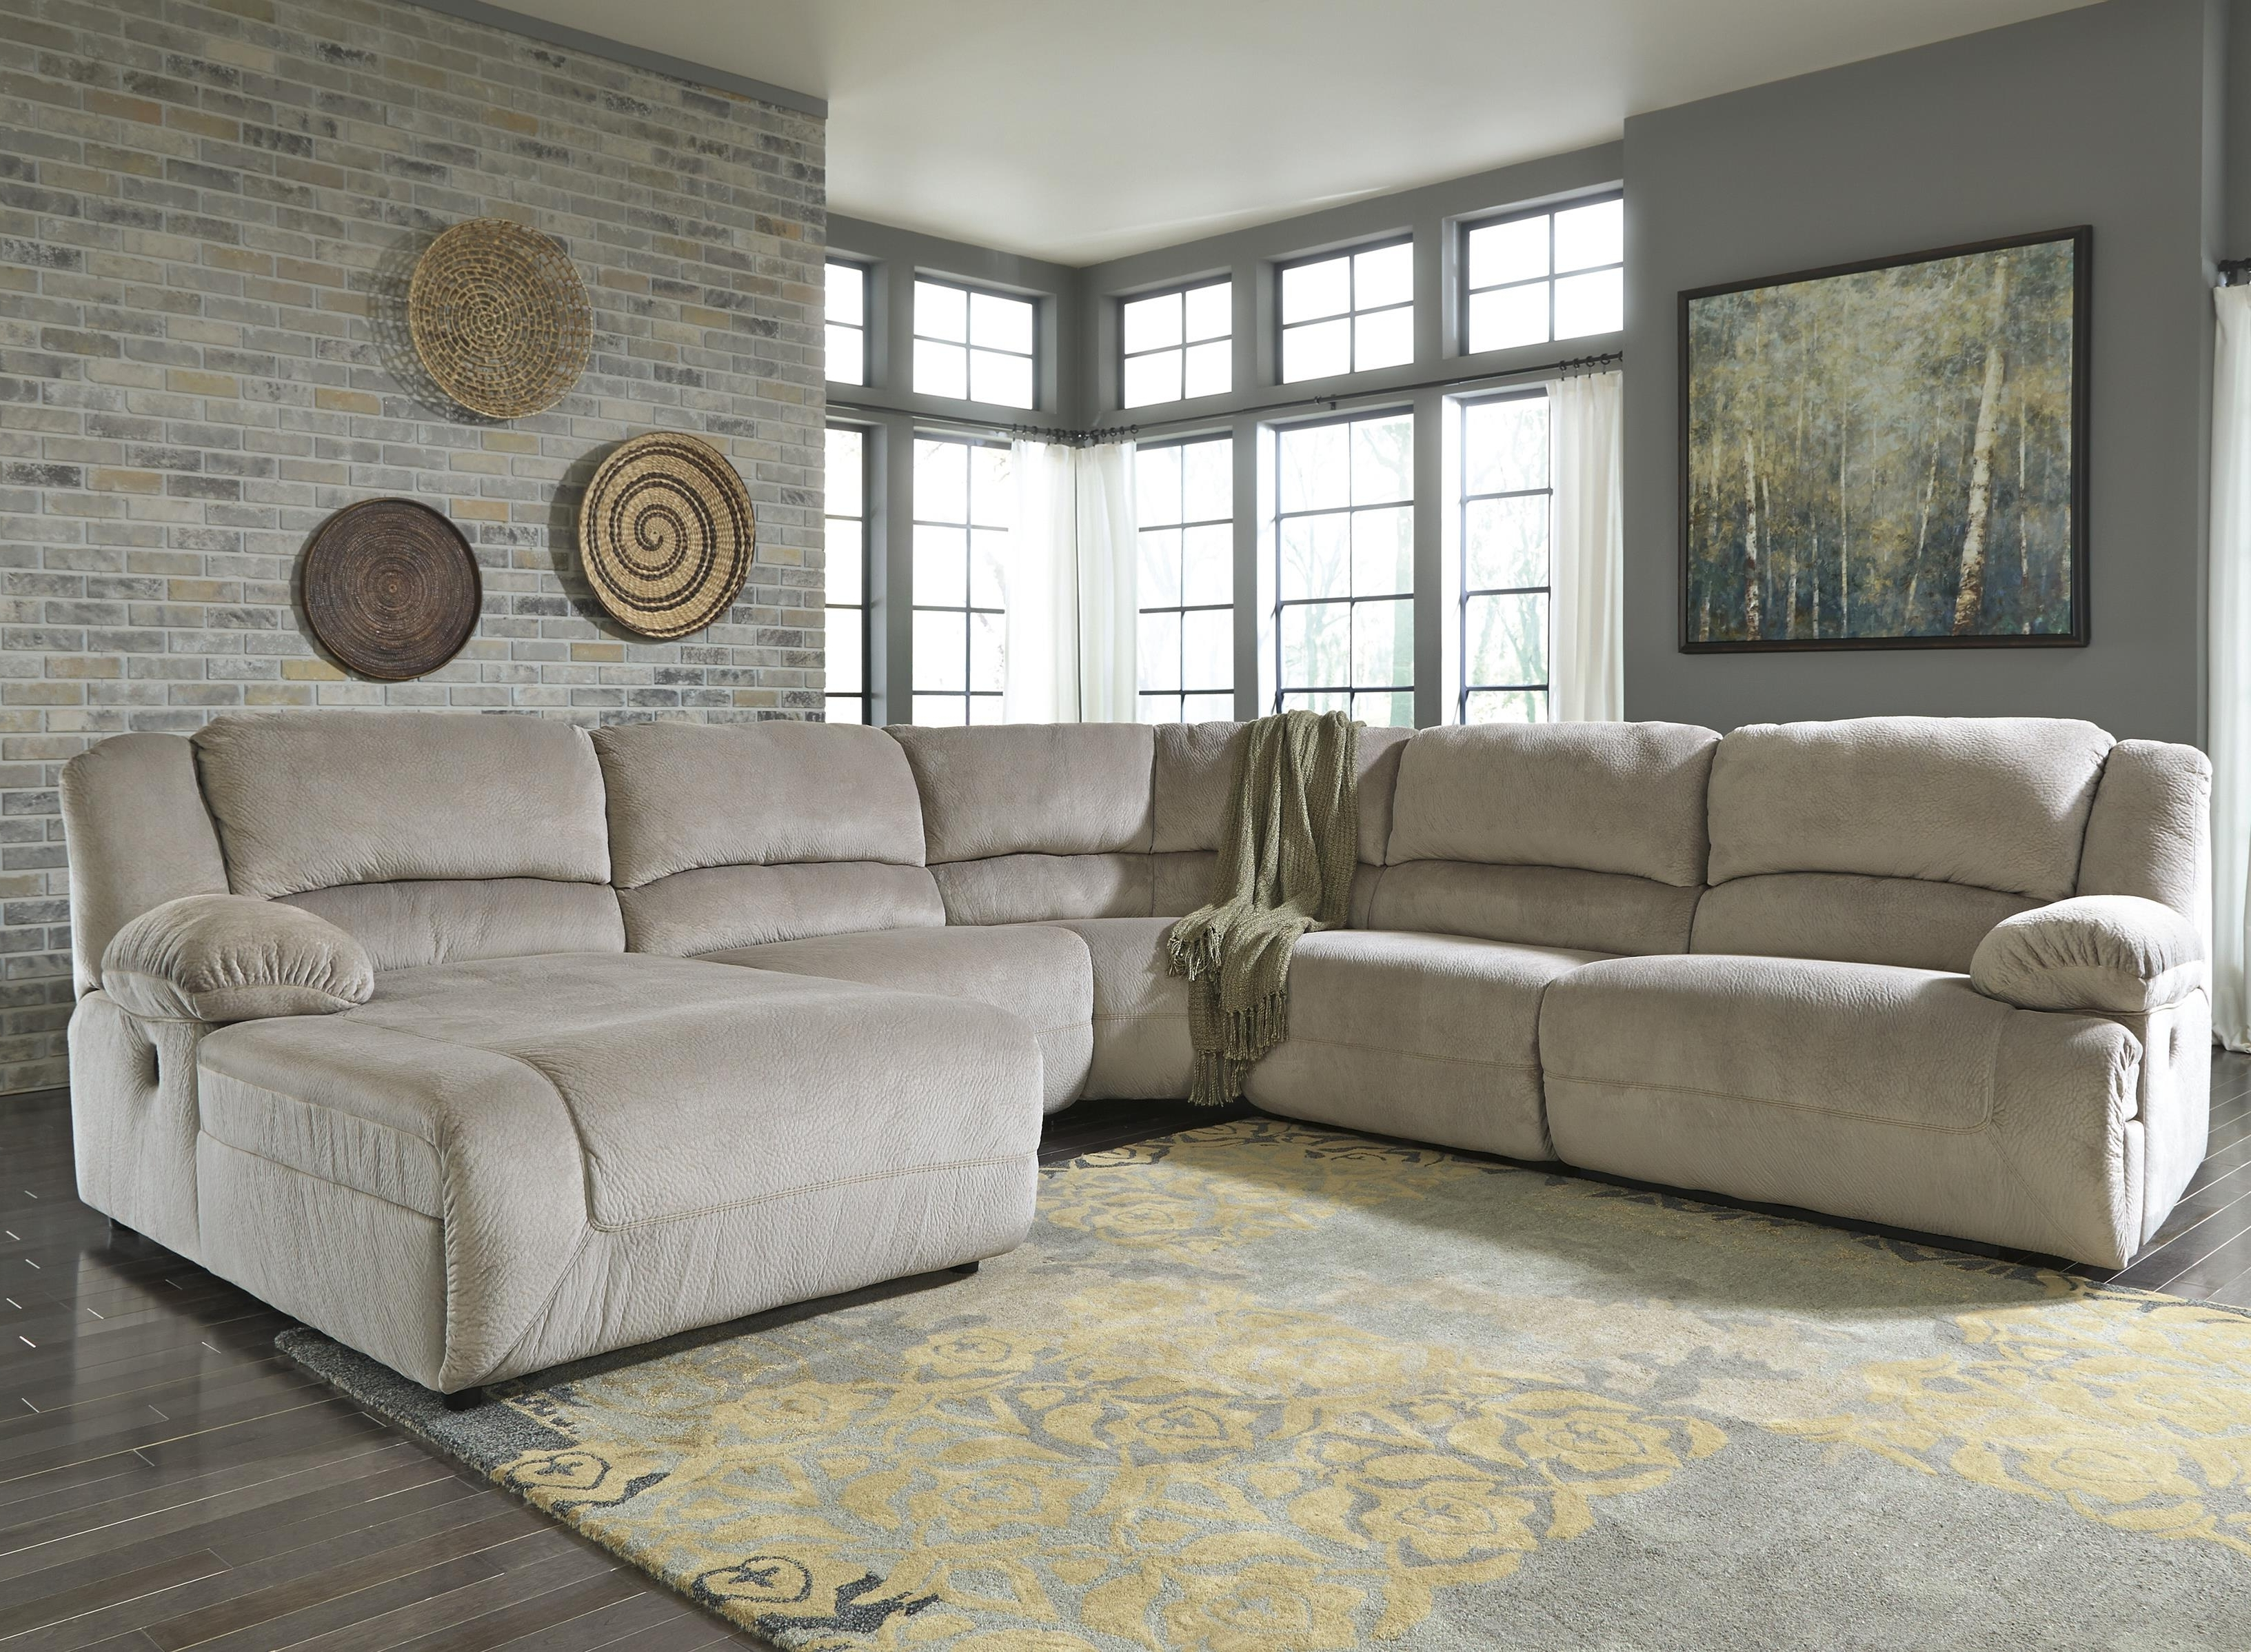 Newest Harrisburg Pa Sectional Sofas In Power Reclining Sectional With Right Press Back Chaise (View 12 of 15)